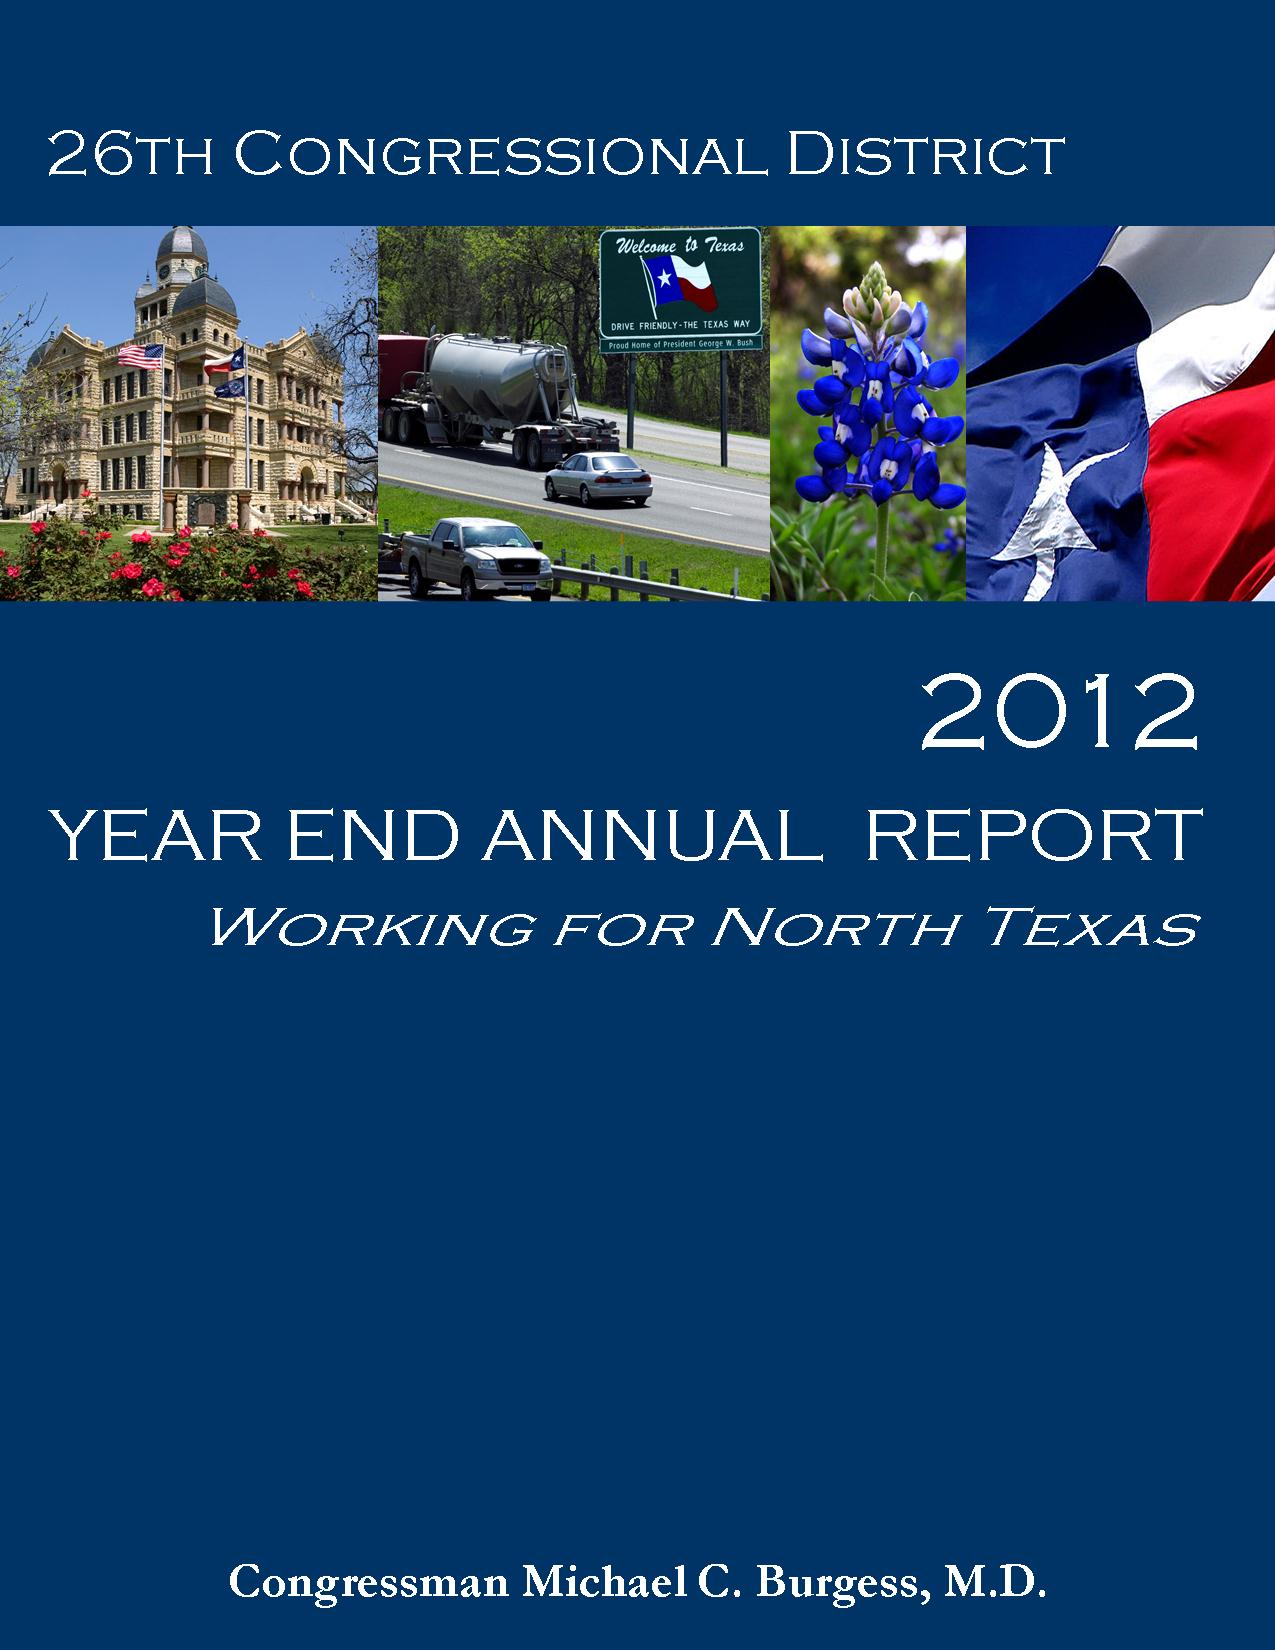 /uploadedfiles/2012_year_end_annual_report_image.jpg